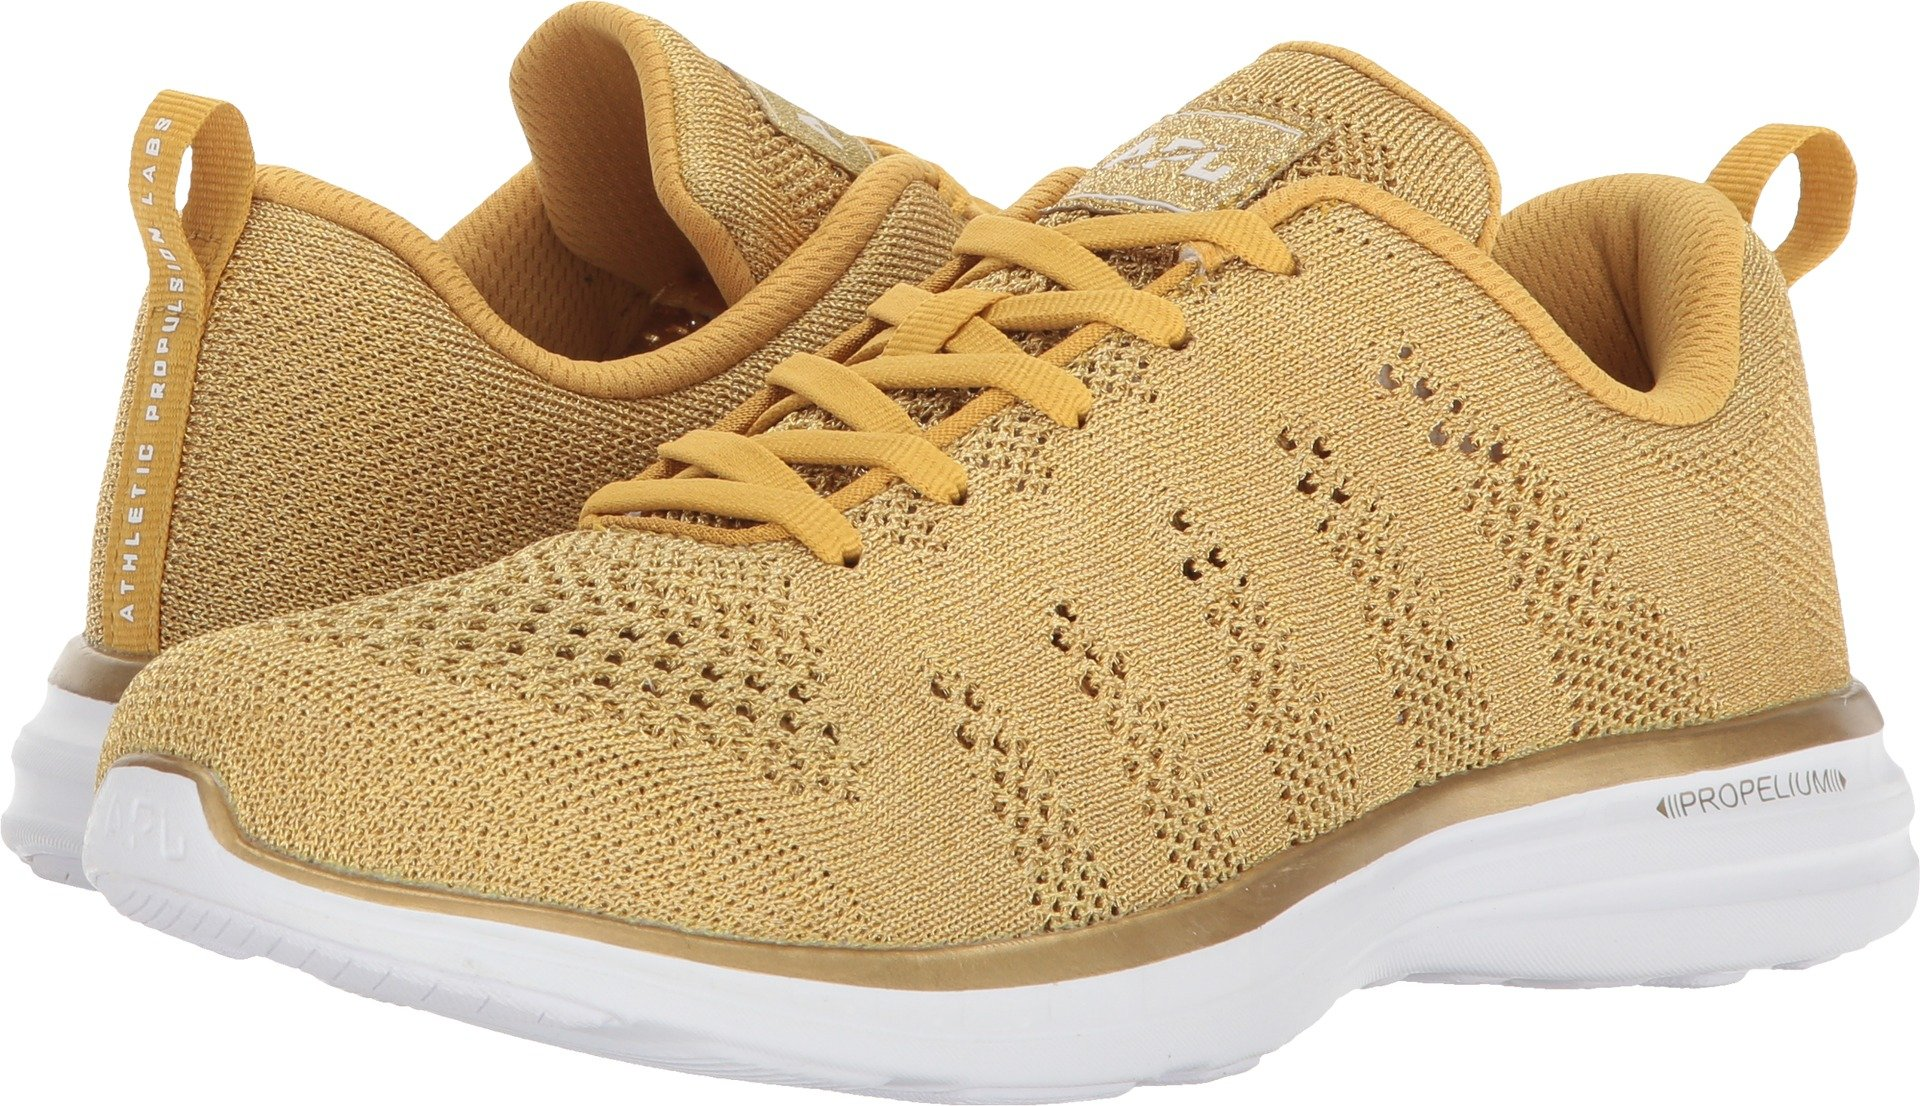 APL: Athletic Propulsion Labs Women's TechLoom Pro Sneakers, 24k, 10 B(M) US